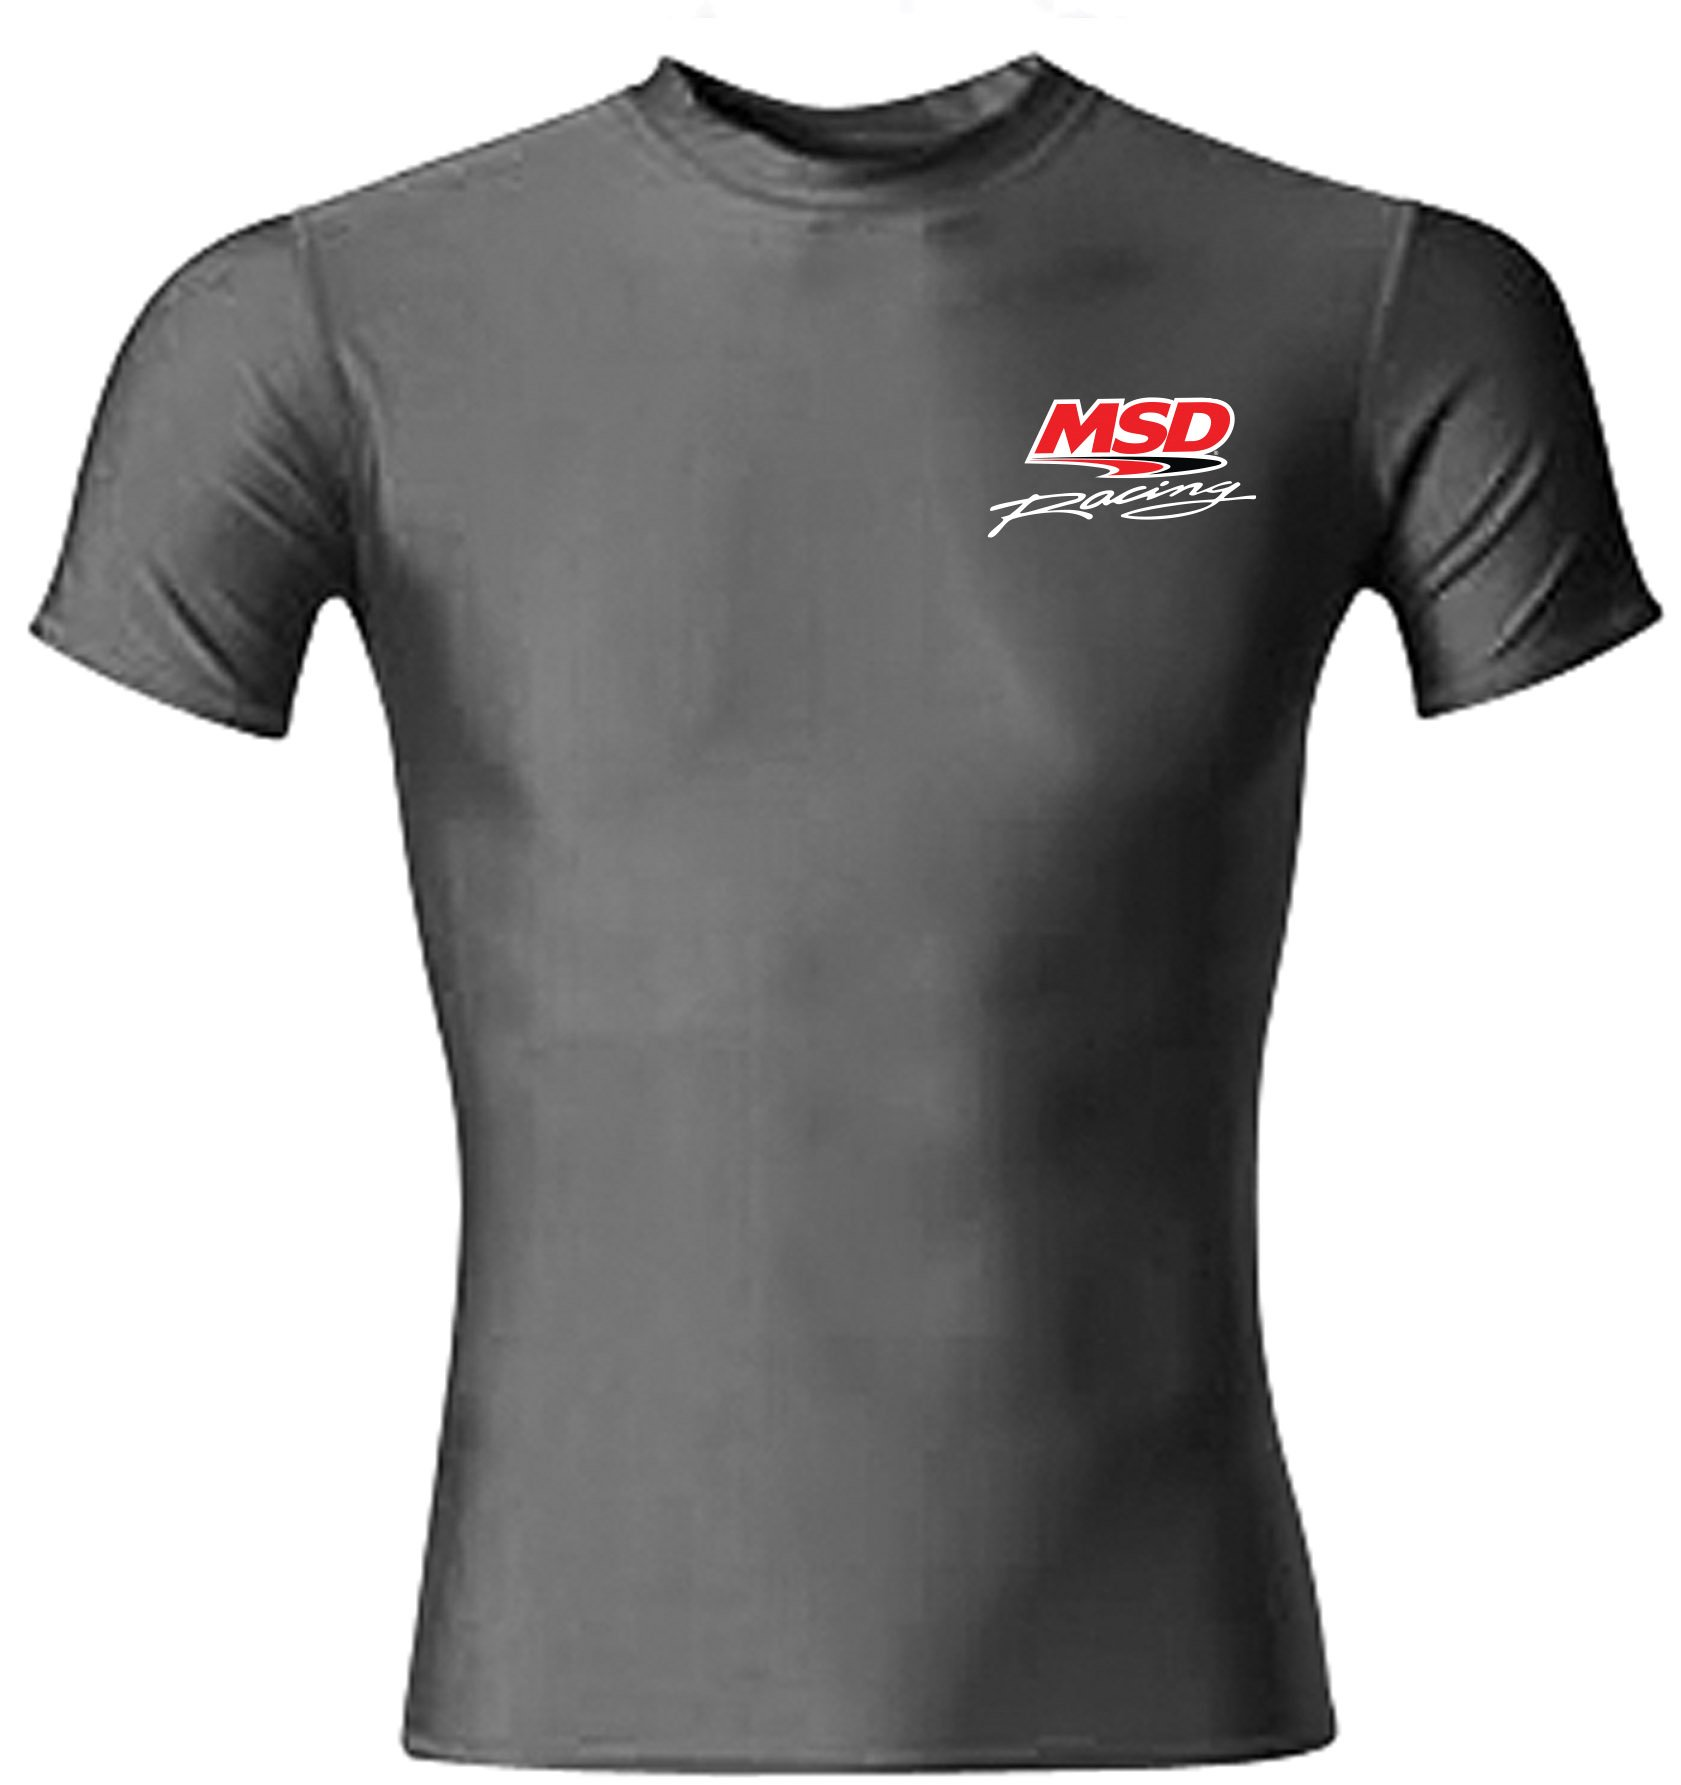 95453 - MSD Compression Crew Shirt, Black, X-Large Image